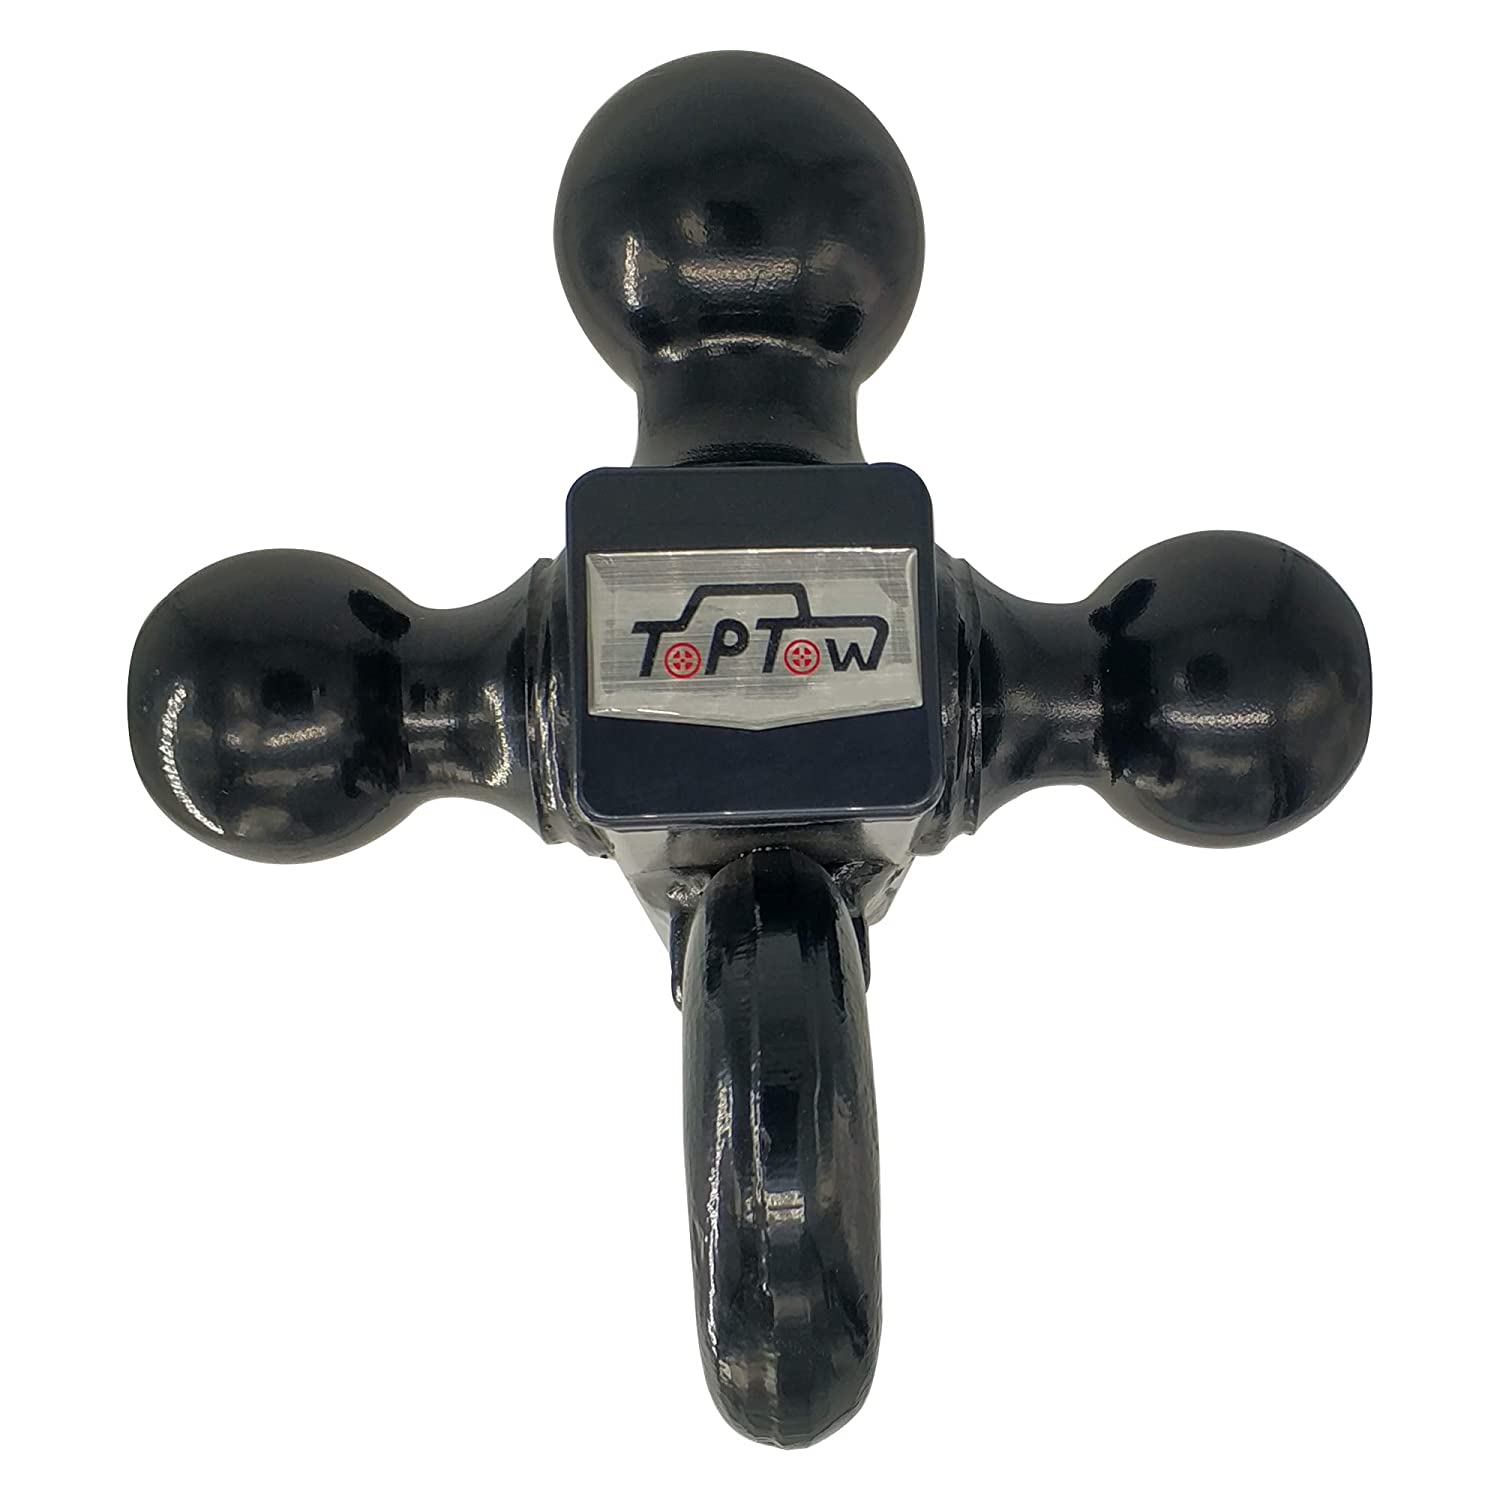 Toptow 64181 Trailer Receiver Hitch Triple Ball Mount with Hook Black Balls Fits for 2 inch Receiver